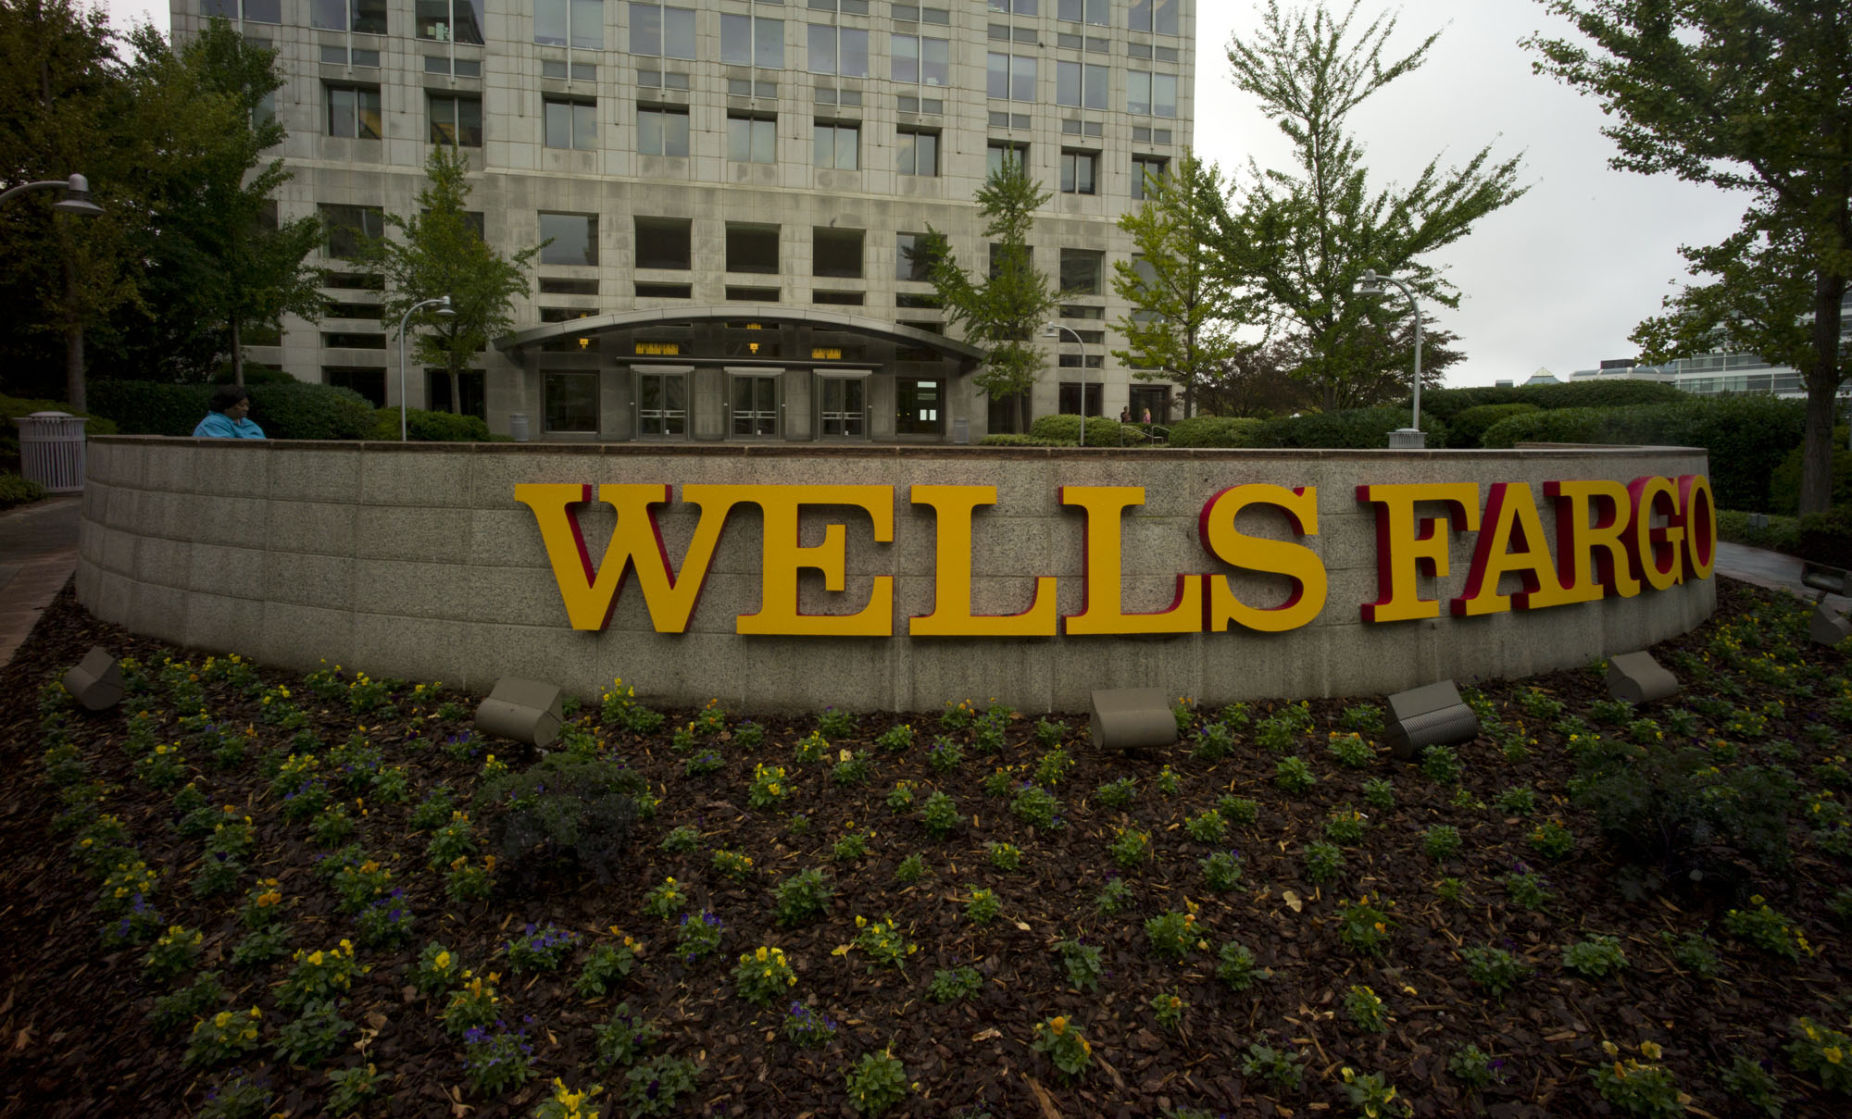 Wells Fargo hires new law firm to prepare CEO for Senate appearance